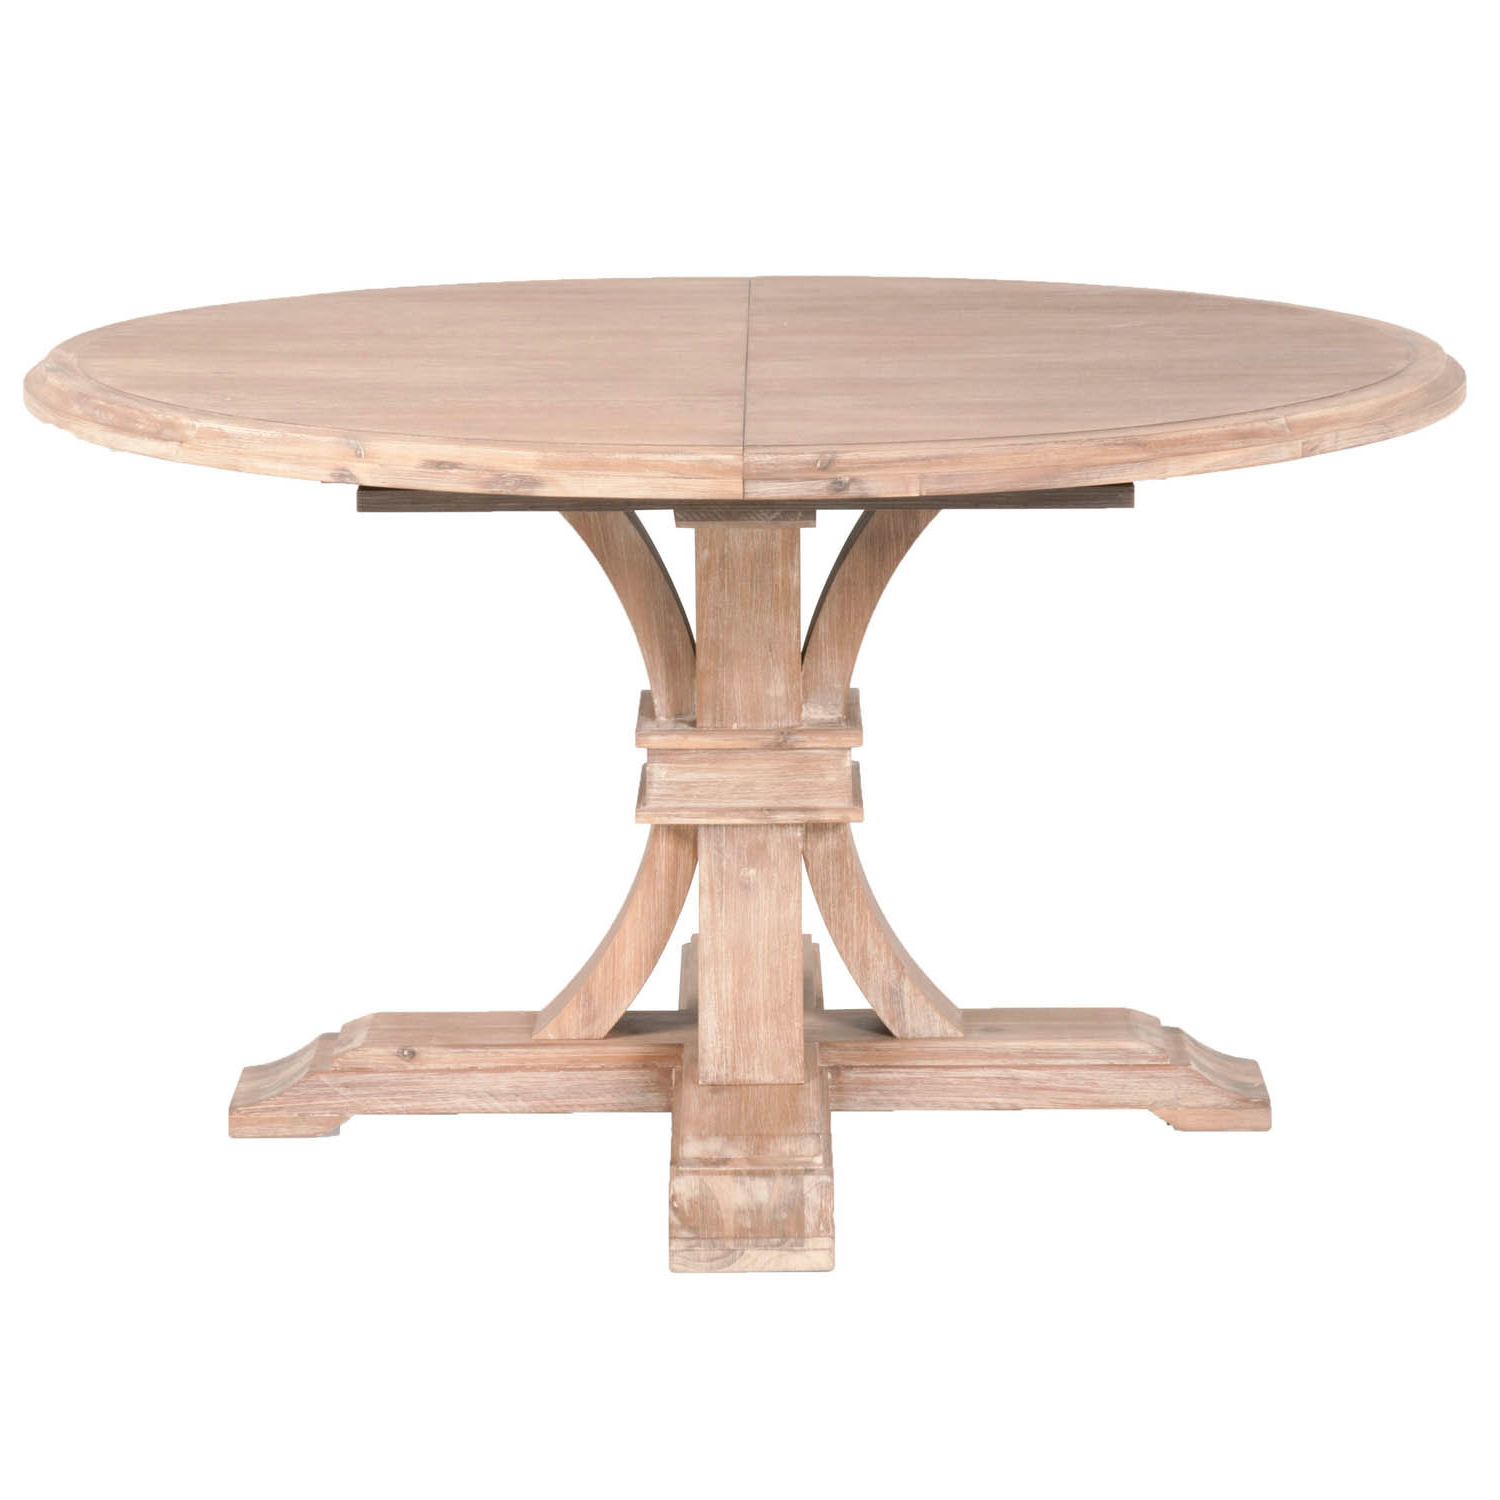 Darby Stone Wash Round Extension Dining Table throughout Well-known Gray Wash Benchwright Pedestal Extending Dining Tables